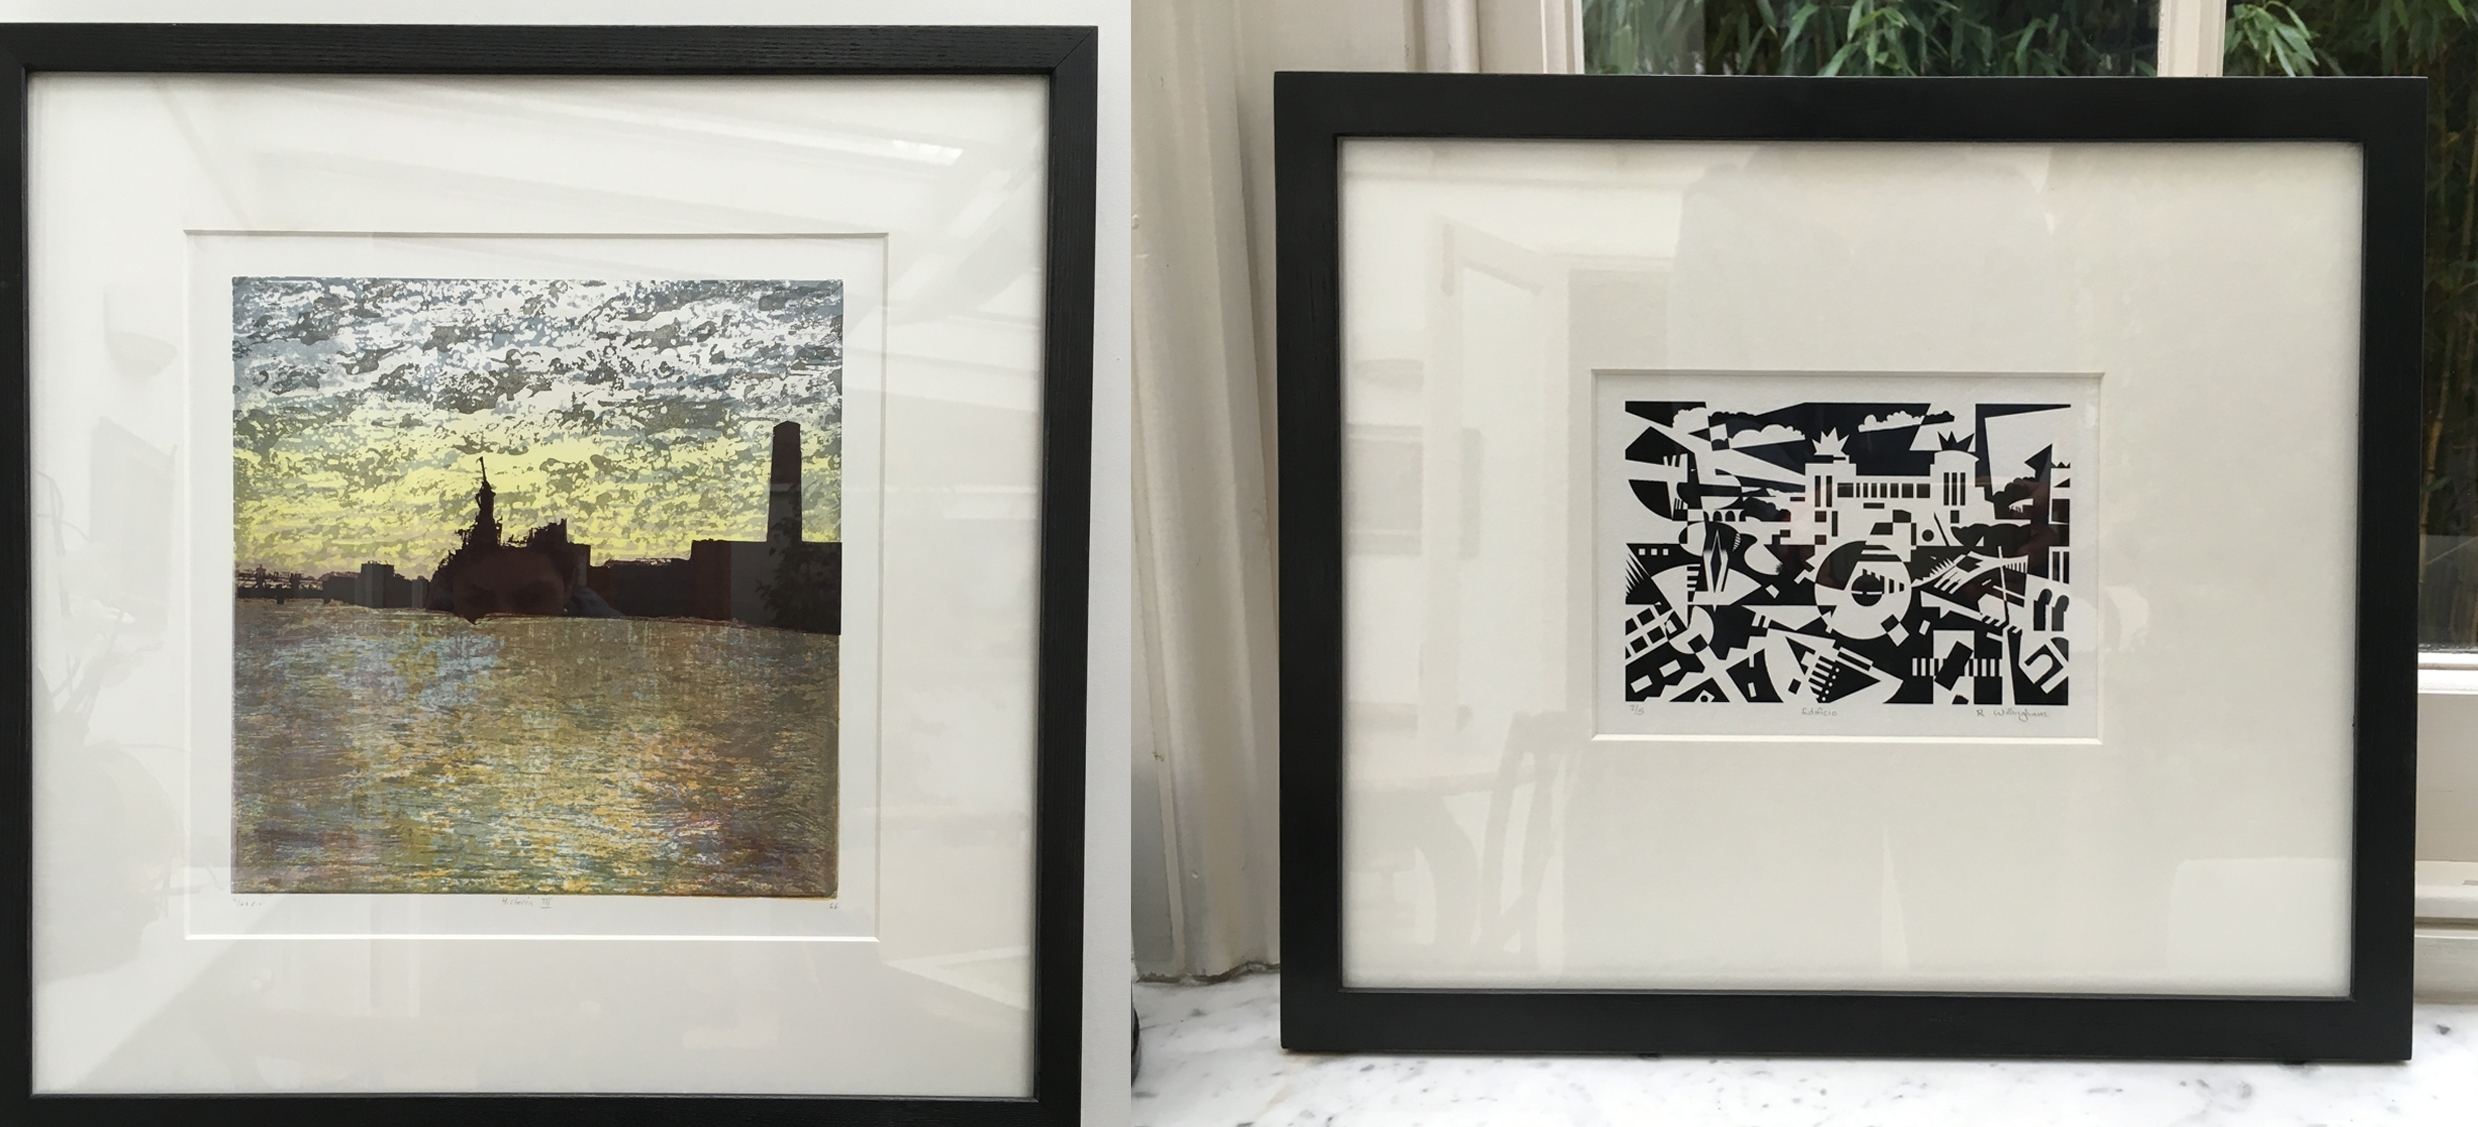 How To Frame Prints – Print Solo Pertaining To Current Abstract Framed Art Prints (View 14 of 15)